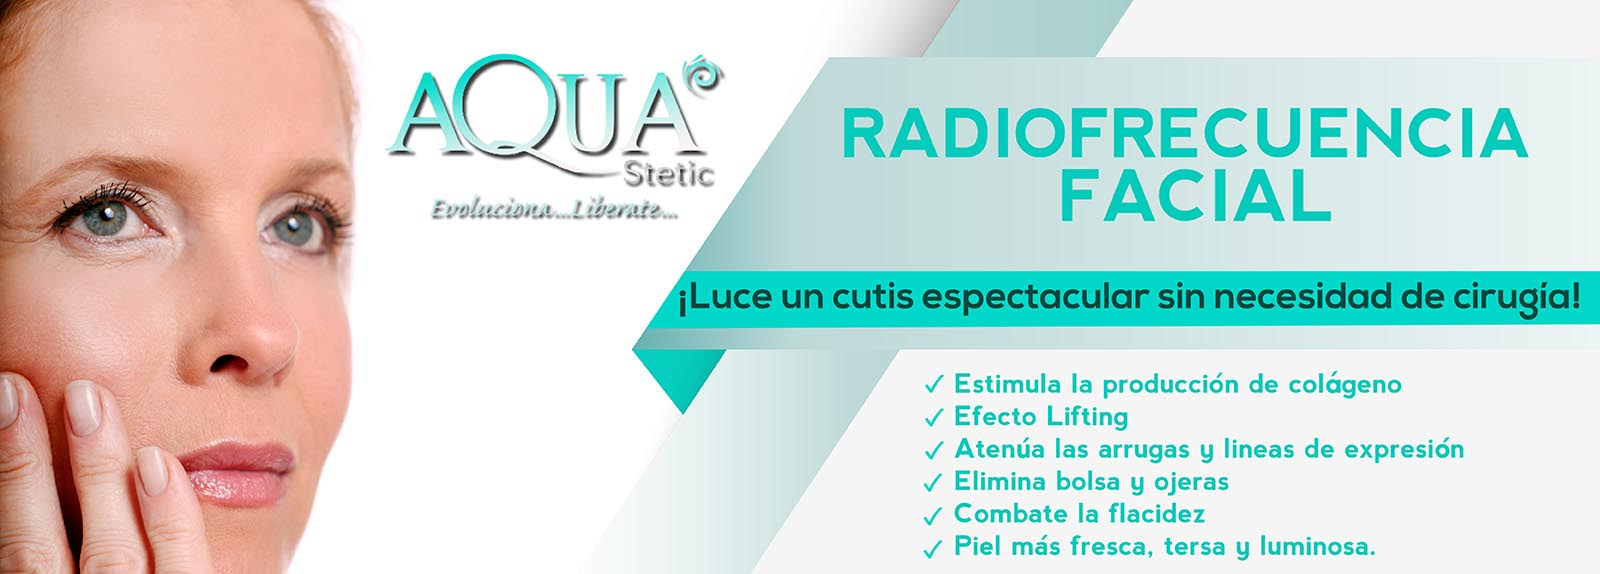 Aqua Stetic ibague